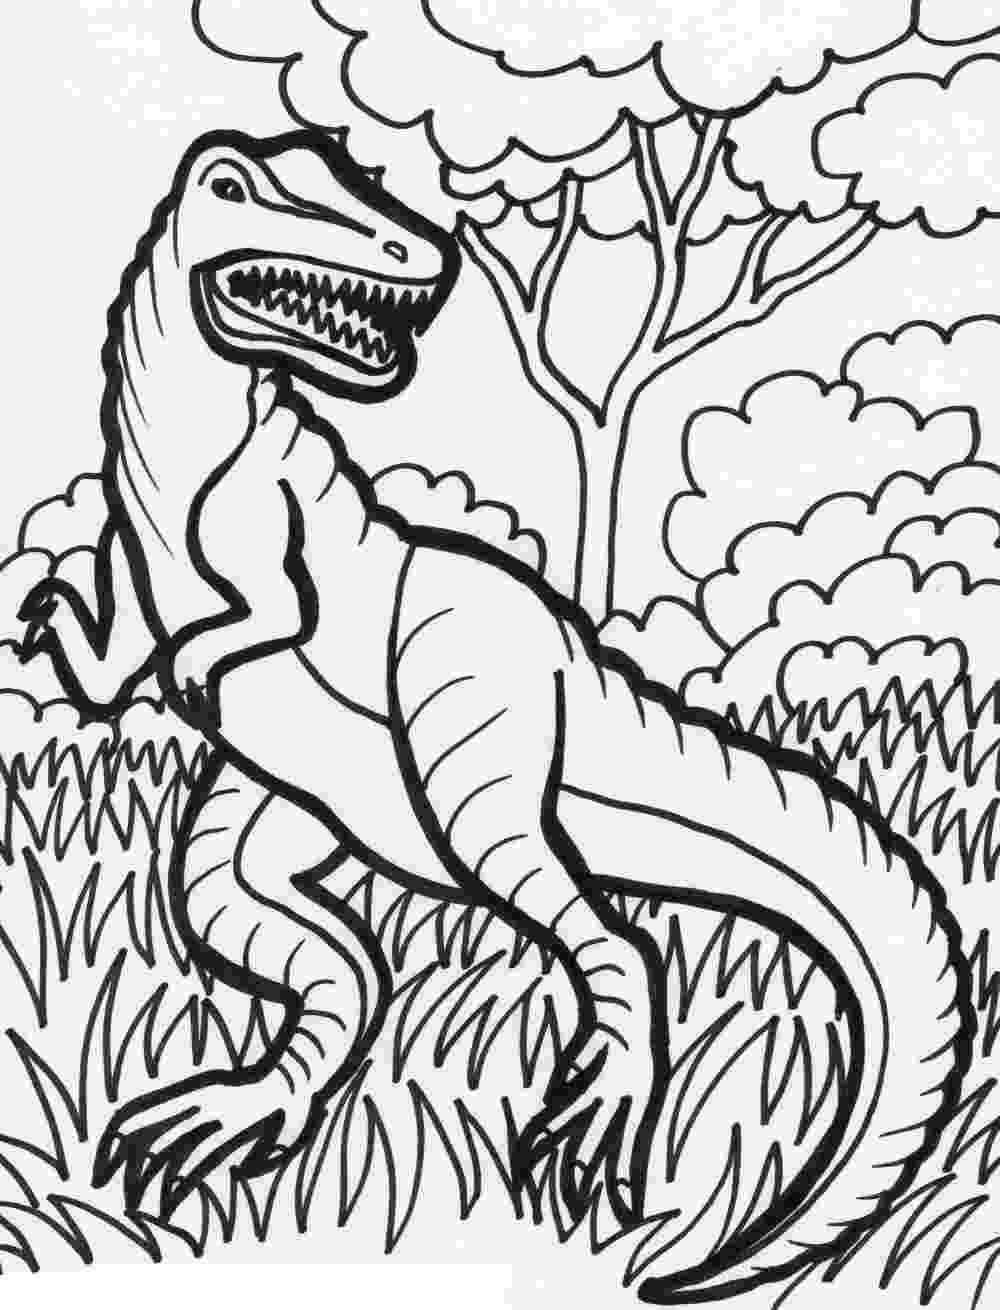 free printable dinosaur pictures free printable dinosaur coloring pages for kids dinosaur printable pictures free